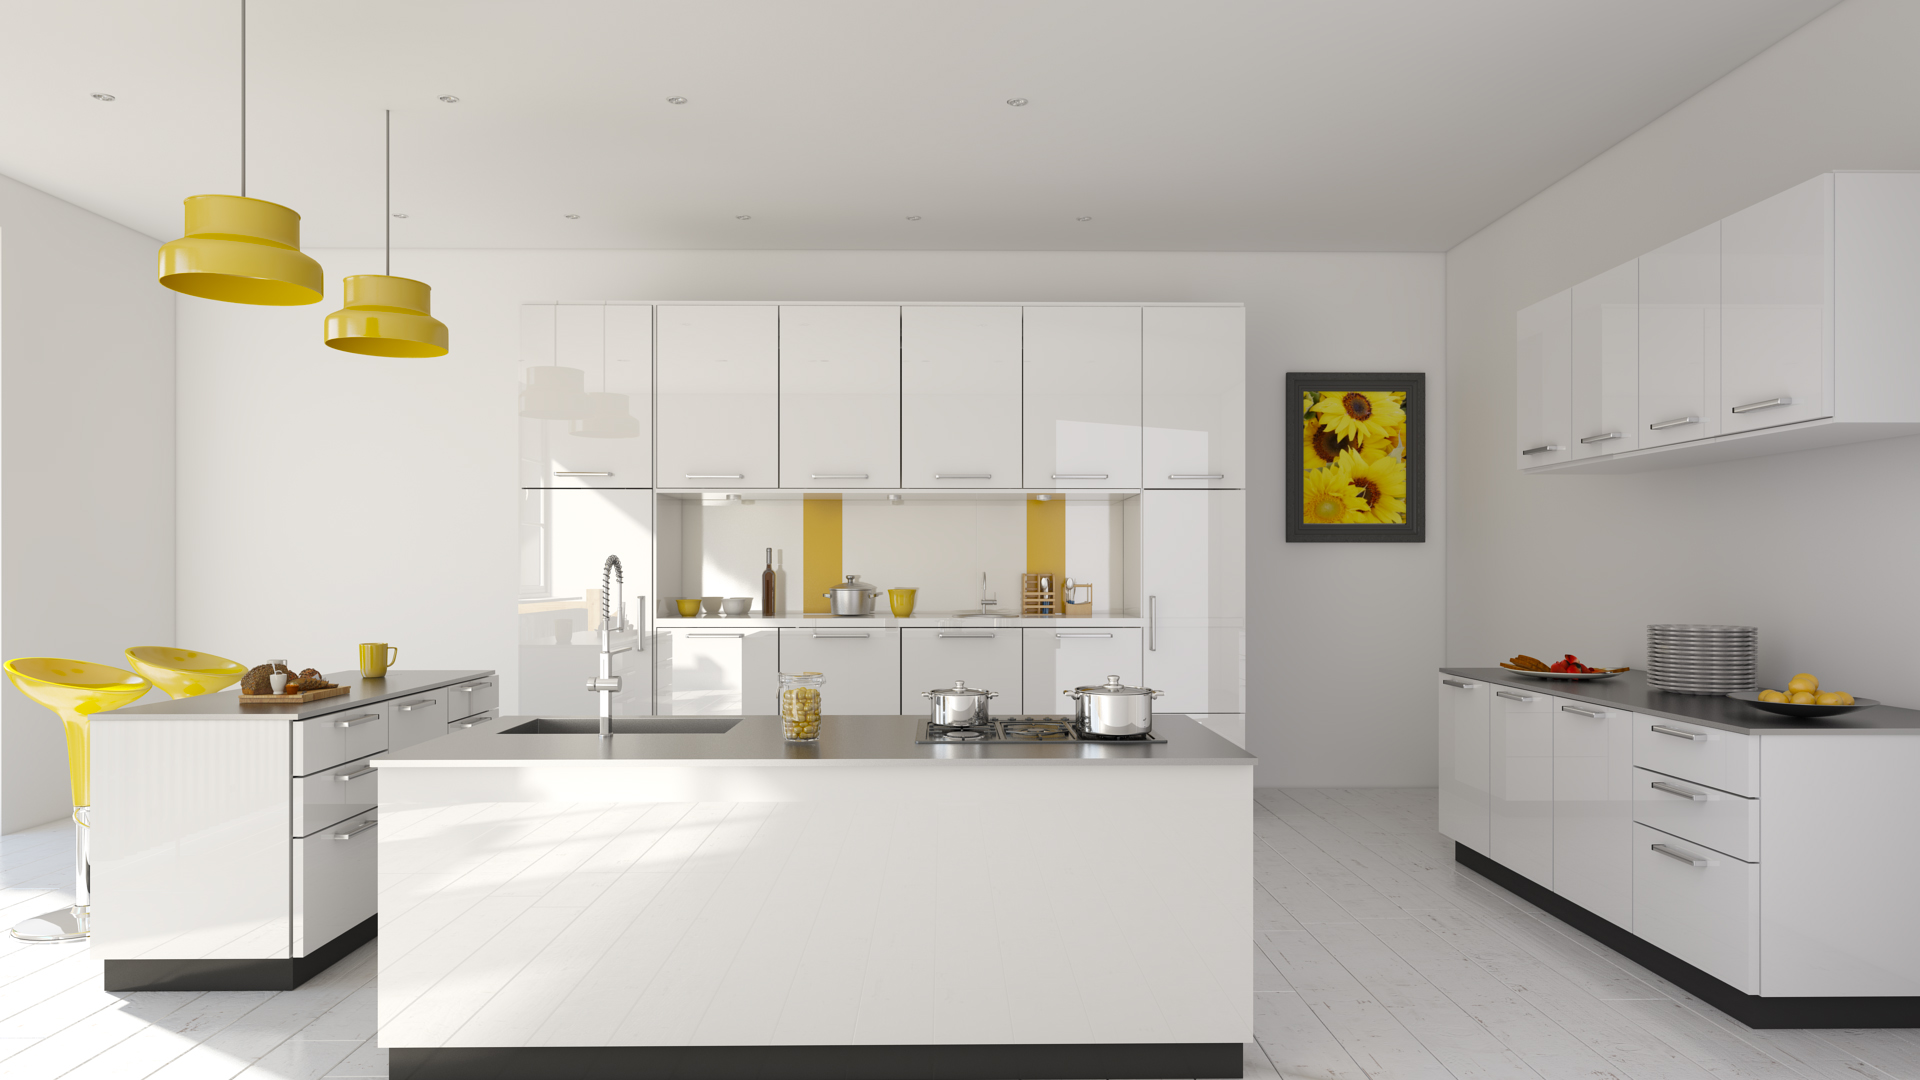 aristo modular lp parallel kitchens kitchen straight designs